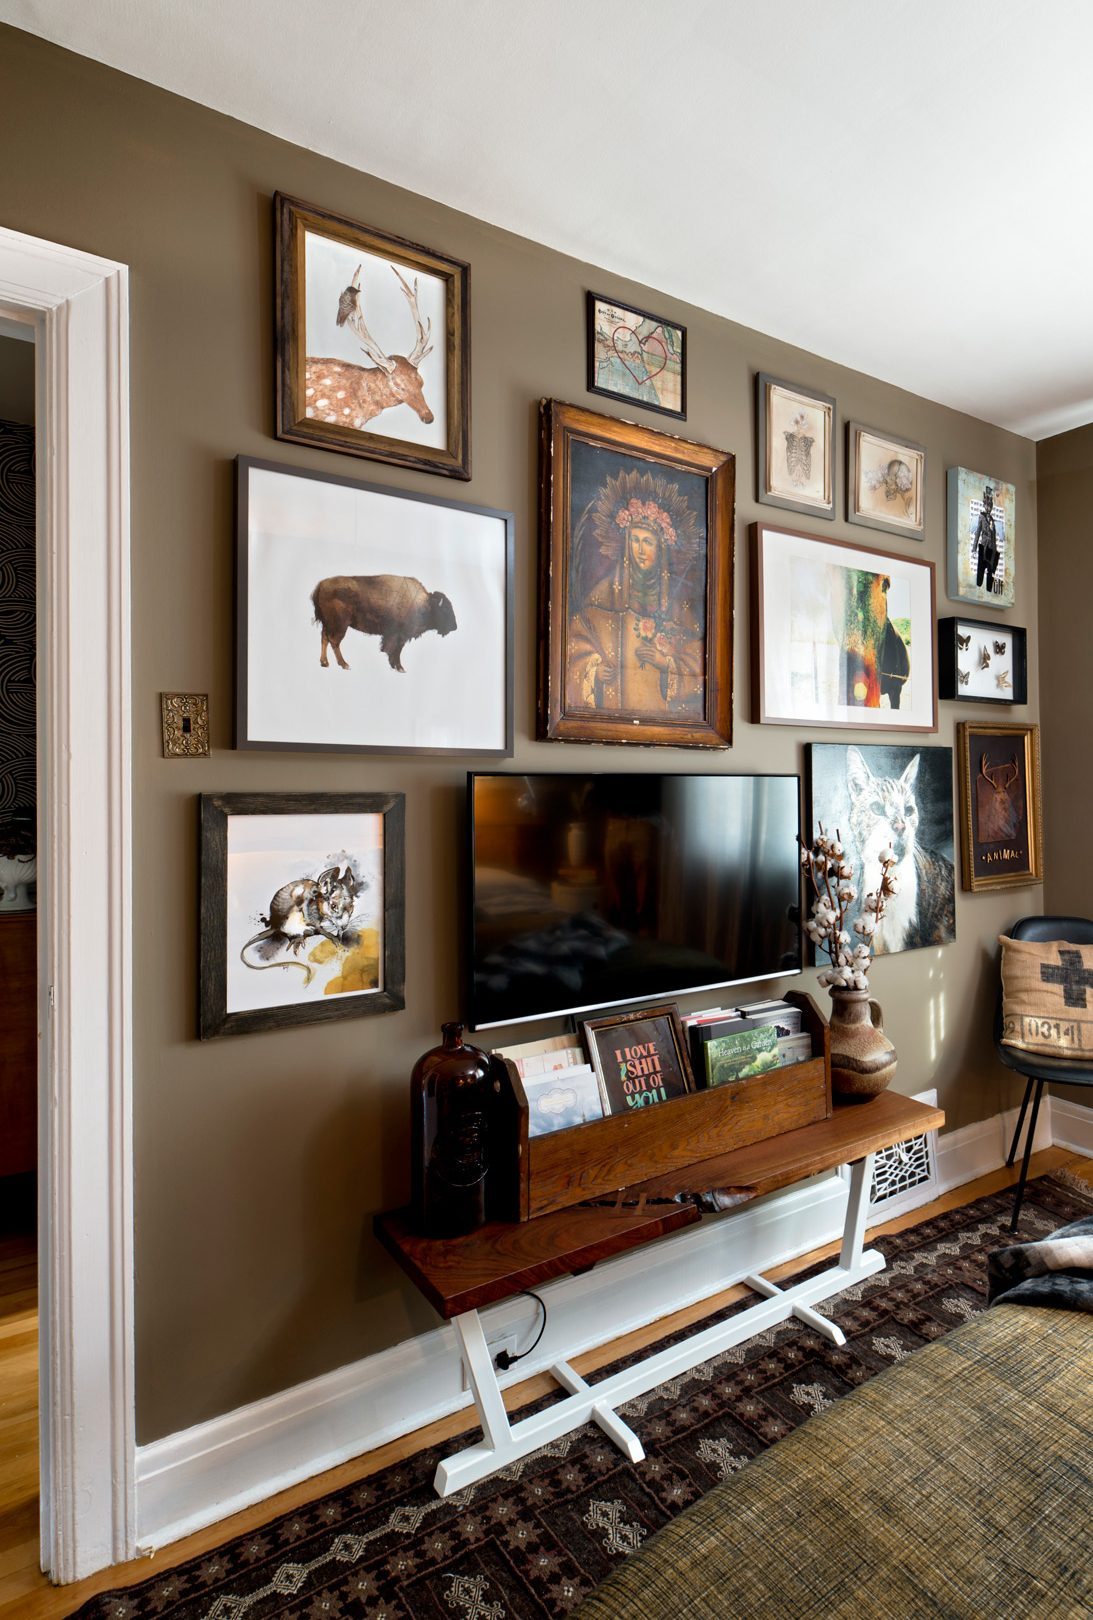 On one wall of the master bedroom a table refurbished by Jeff sits below the television, while a gallery of interesting art finds livens up the room. Photography: Marc Fowler / Metropolis Studio